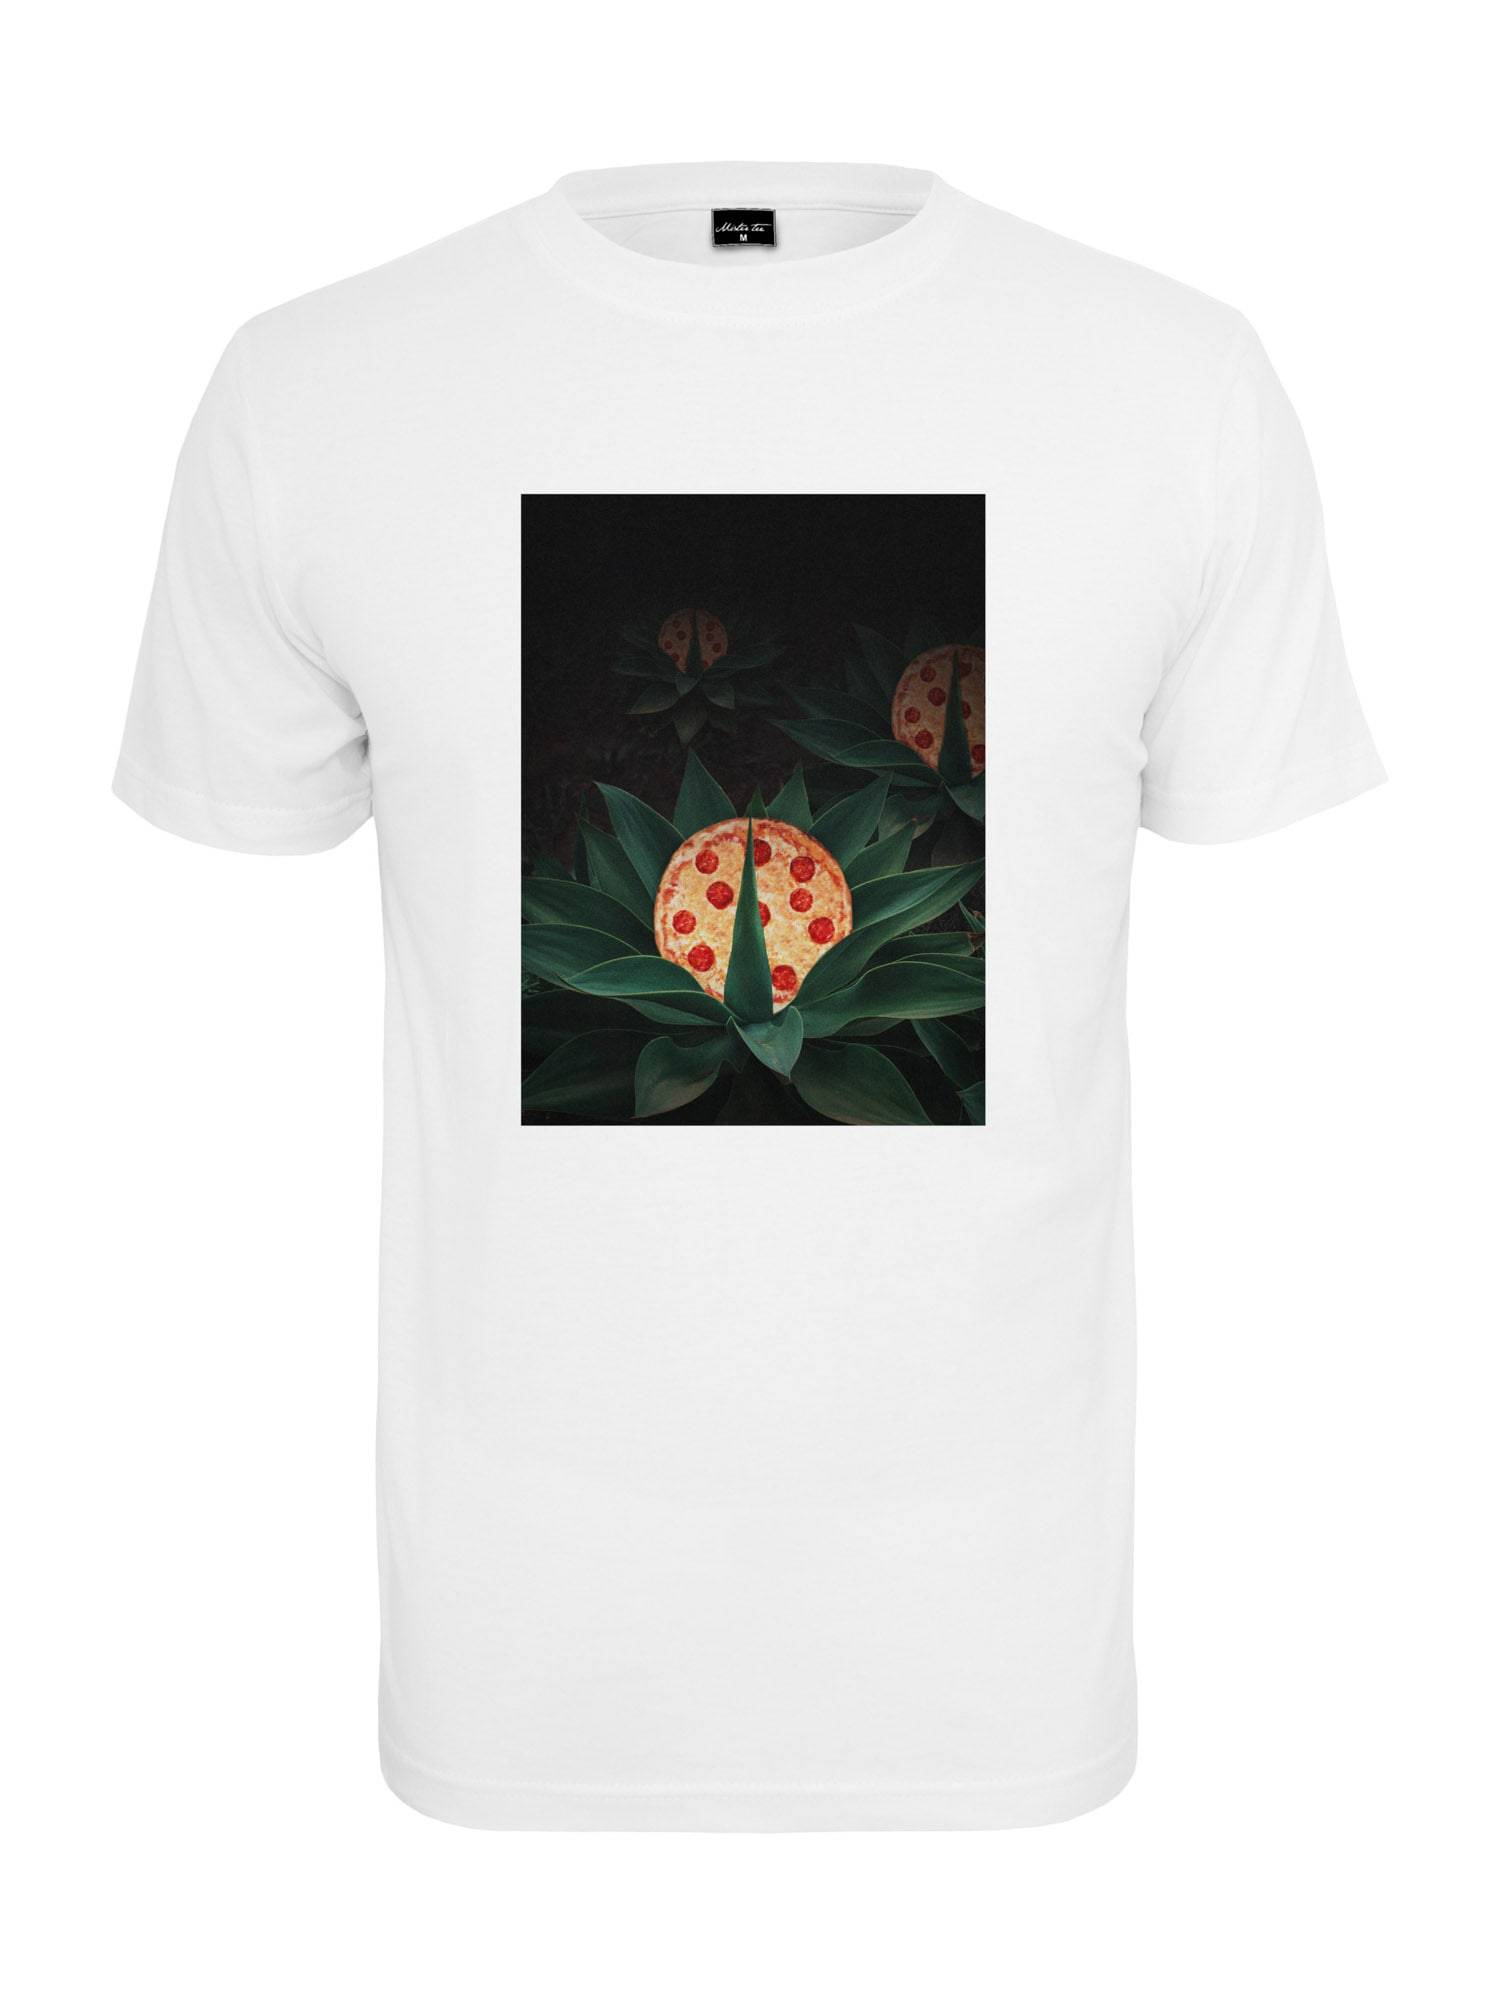 Tee T-Shirt 'Pizza Plant''  - Blanc - Taille: M - male